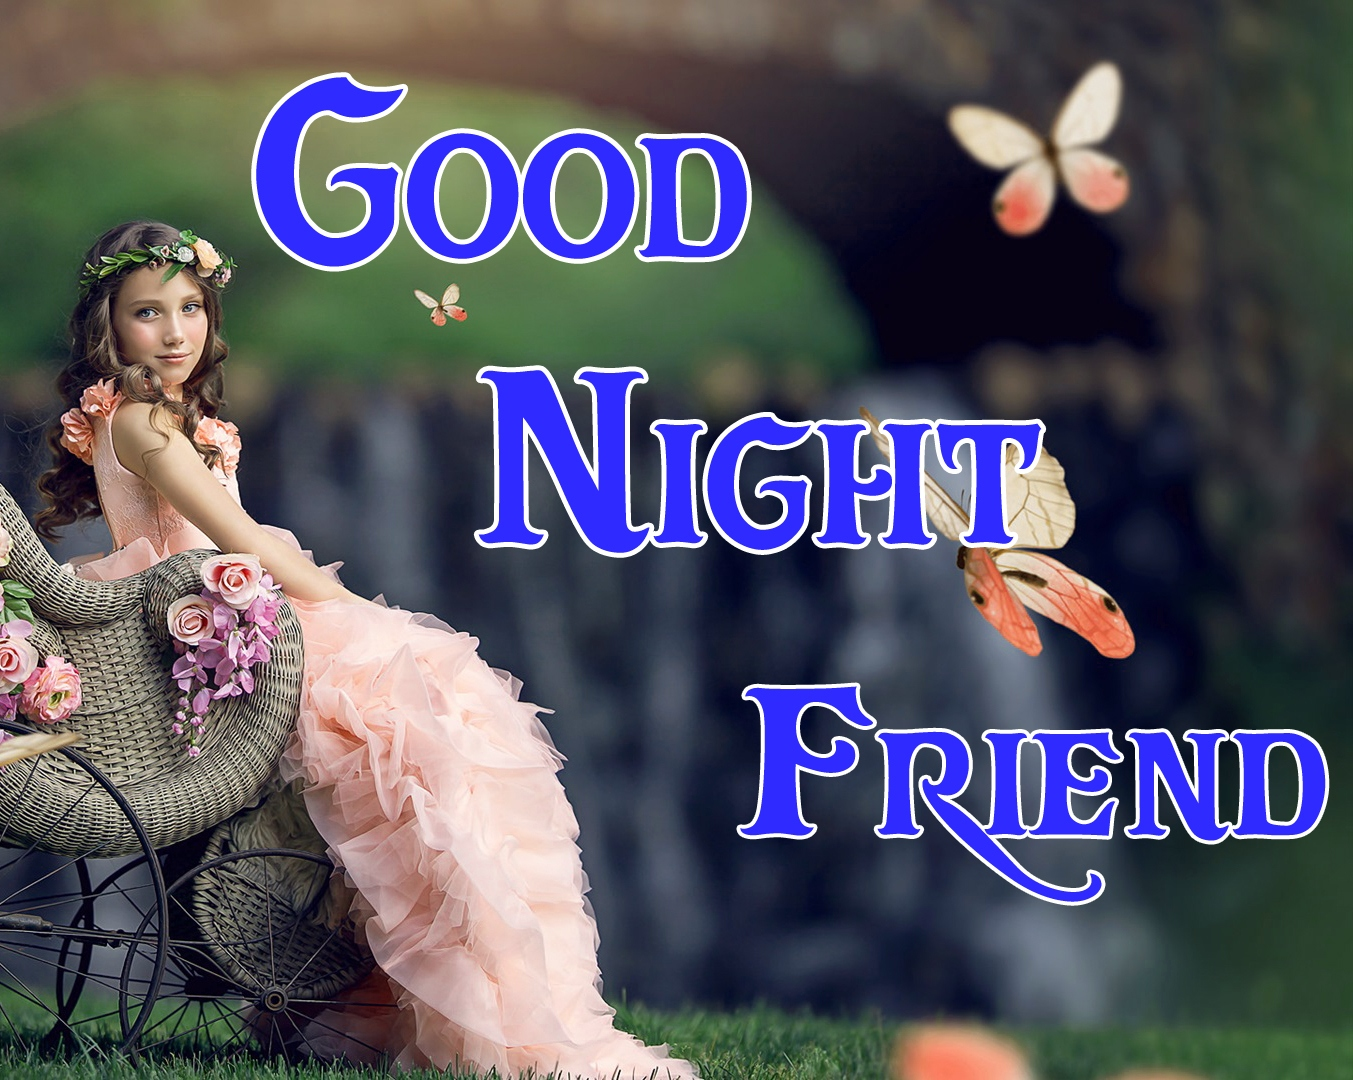 Good night wallpaper hd 102